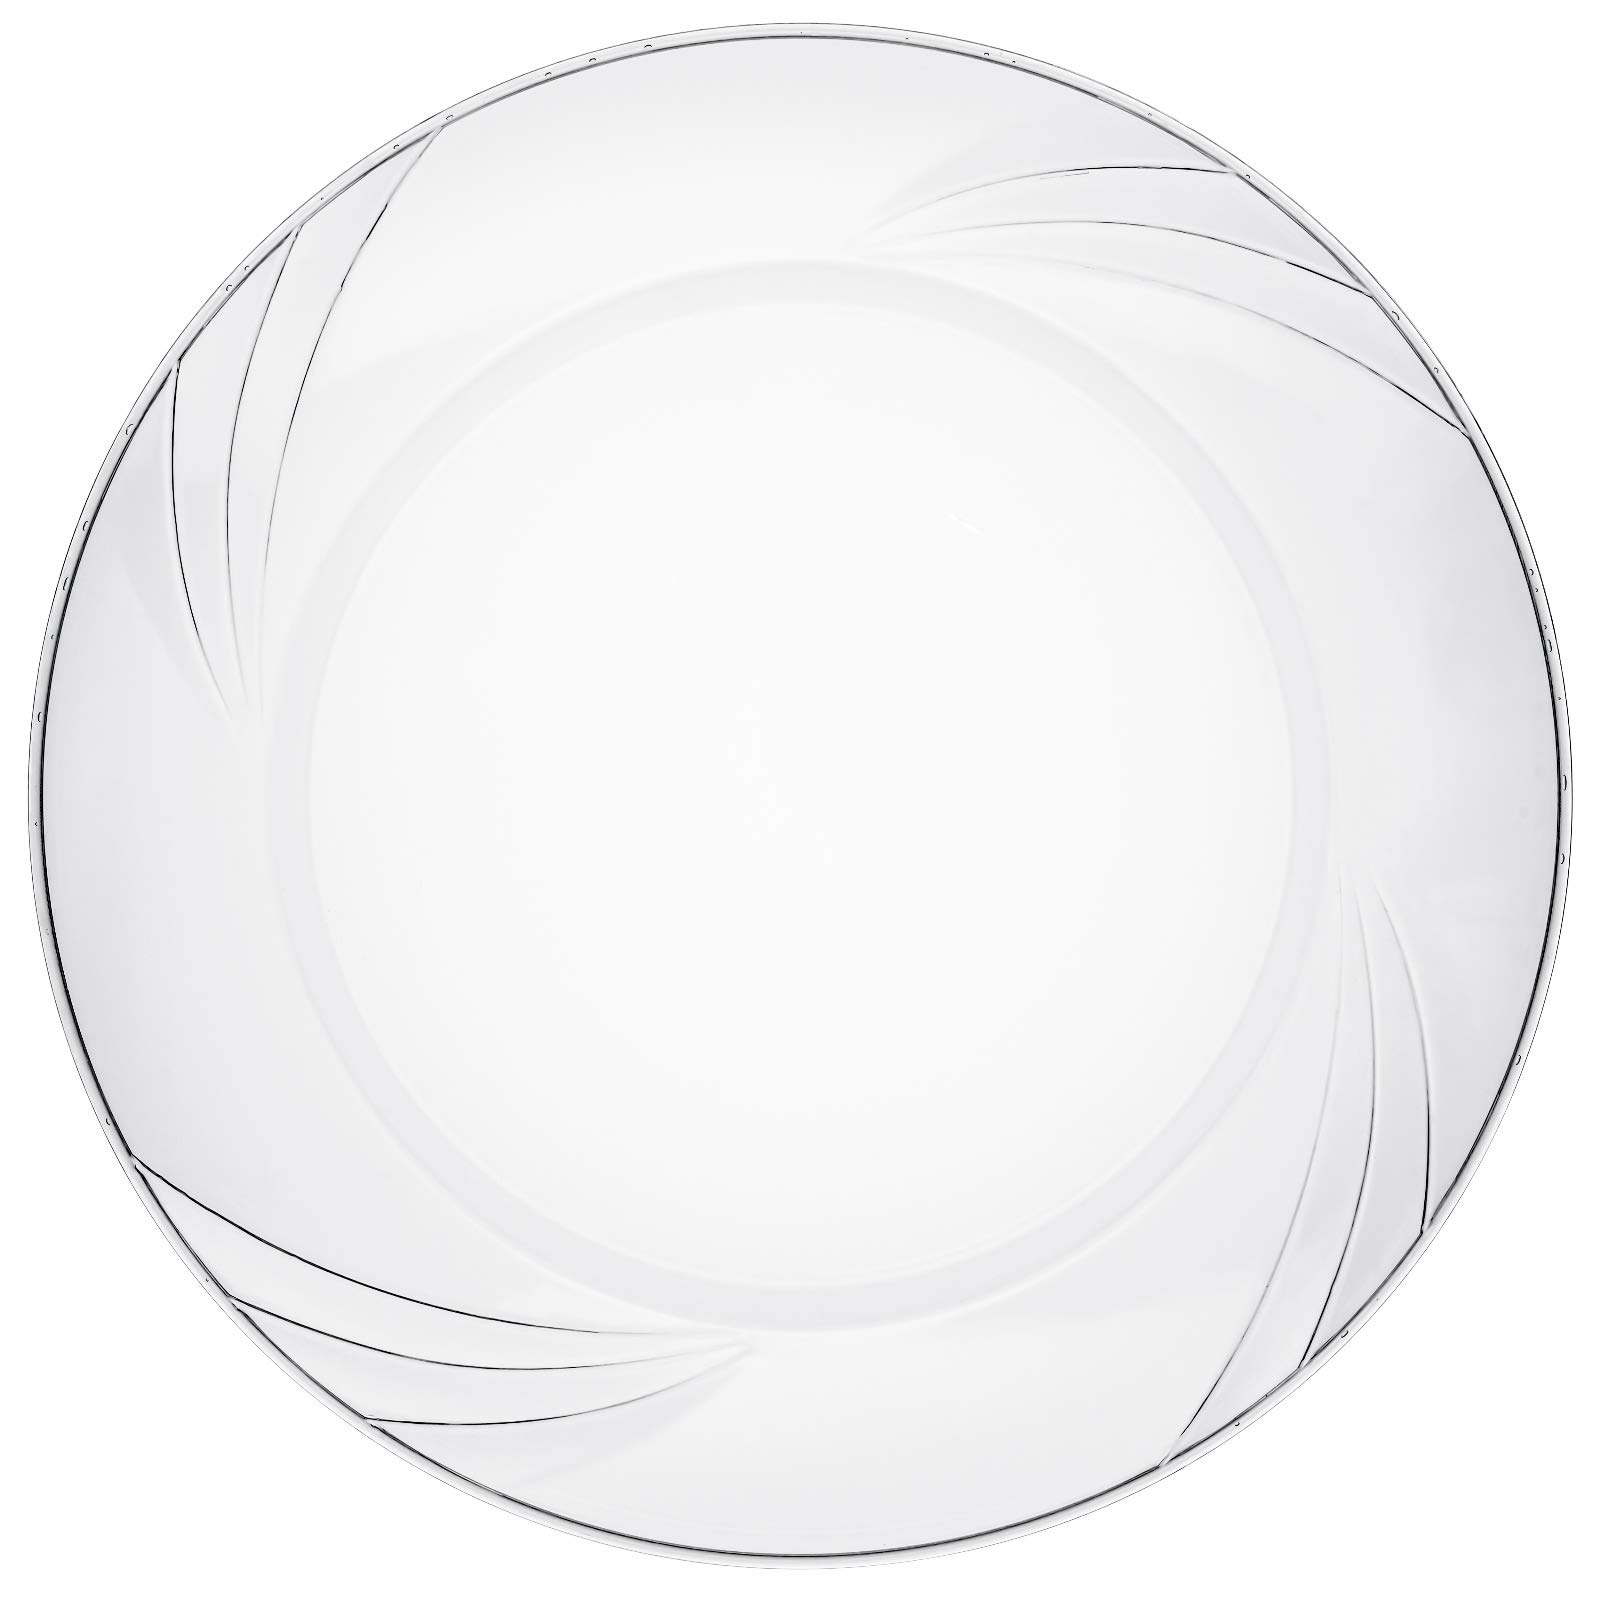 """Disposable Clear Plastic Plates - 50 Pack - 6.5"""" Round Dessert and Appetizer Size - Premium Quality Hard and Elegant Party Goods - For Parties and Everyday Use - Aya's Cutlery Kingdom"""